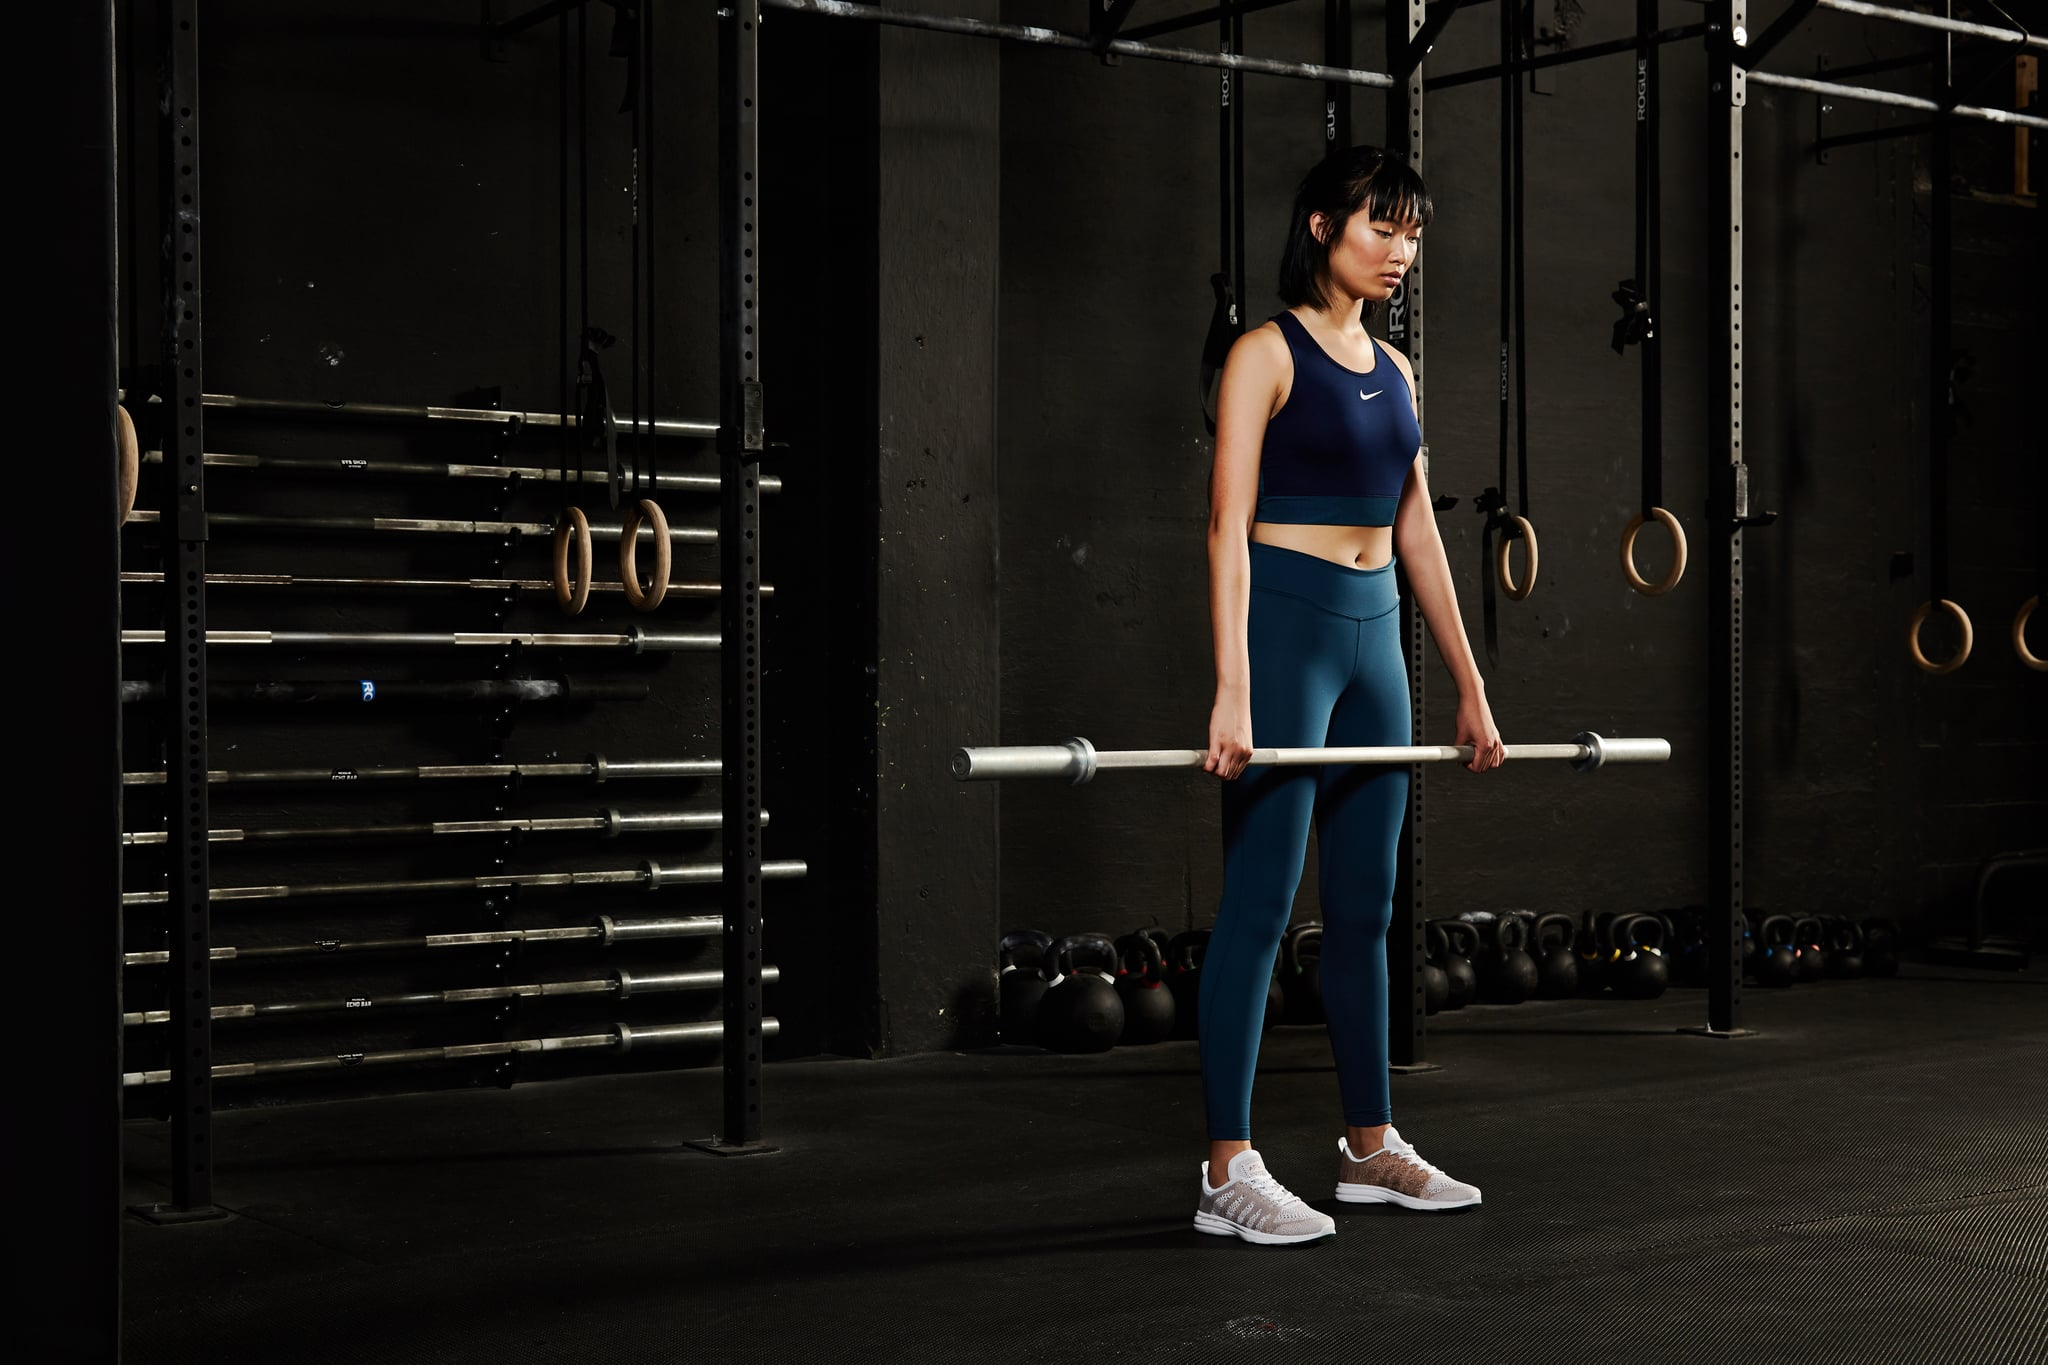 Why Every Woman Should Incorporate Strength Training Into Her Routine